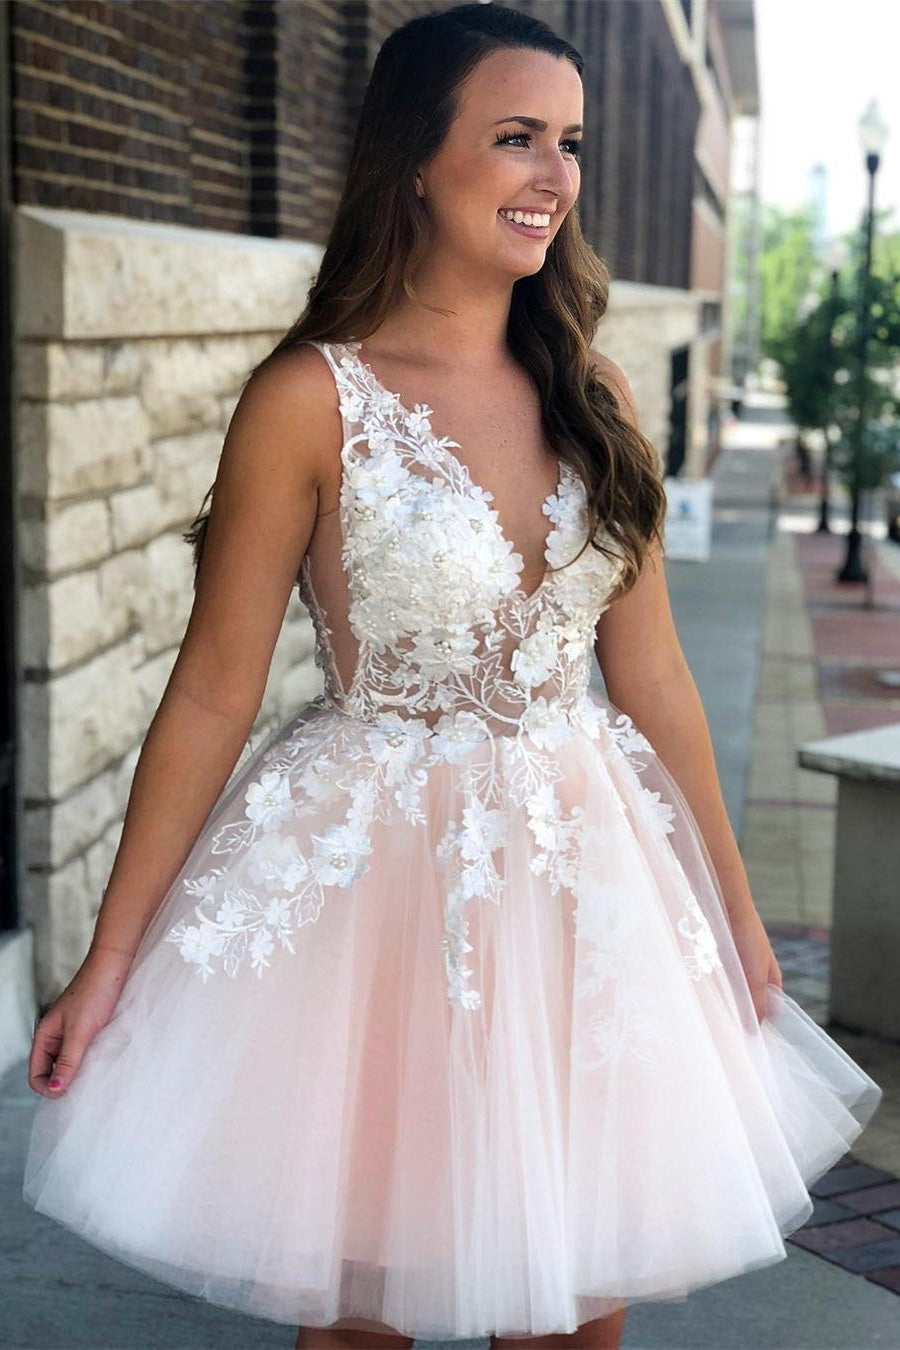 Princess Pink And Ivory Short V-neck Prom Dresses Homecoming Dresses Z2030